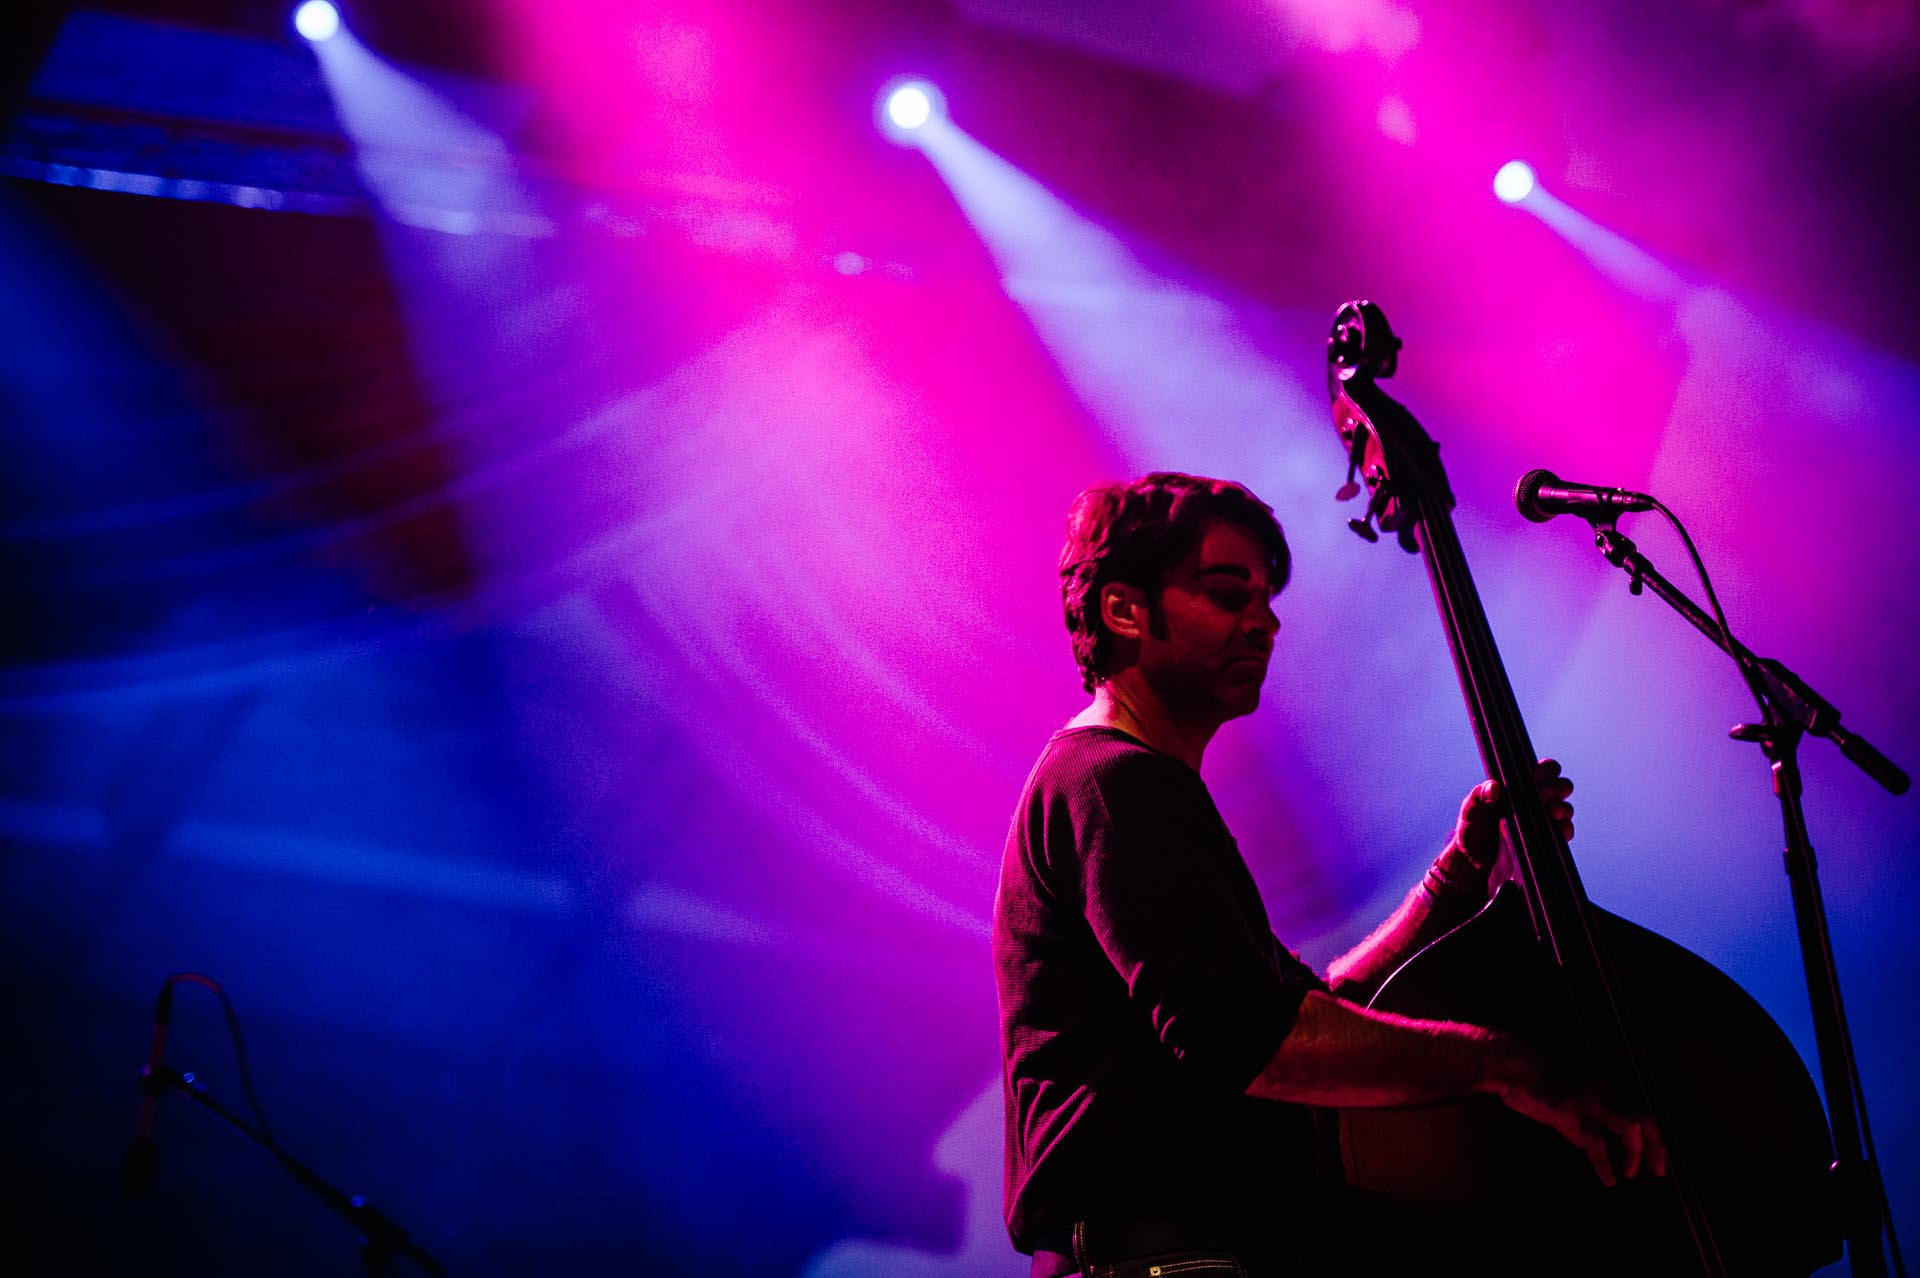 avett_brothers_the_lawn_white_river_state_park_indianapolis_093012-12